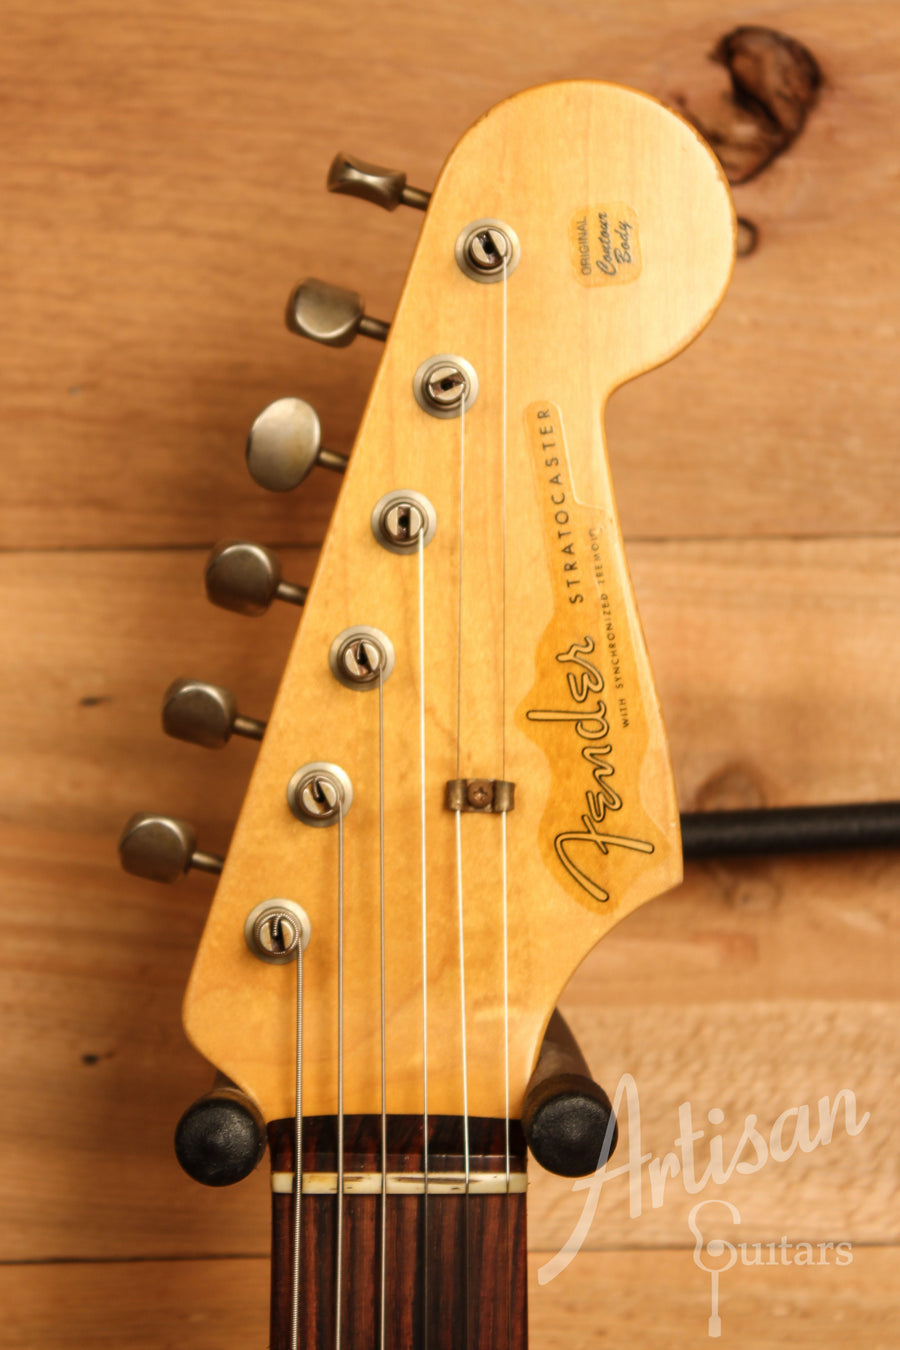 Fender Custom Shop 1960 Relic Stratocaster Aged Black Finish Pre-Owned 2014 ID-11459 - Artisan Guitars